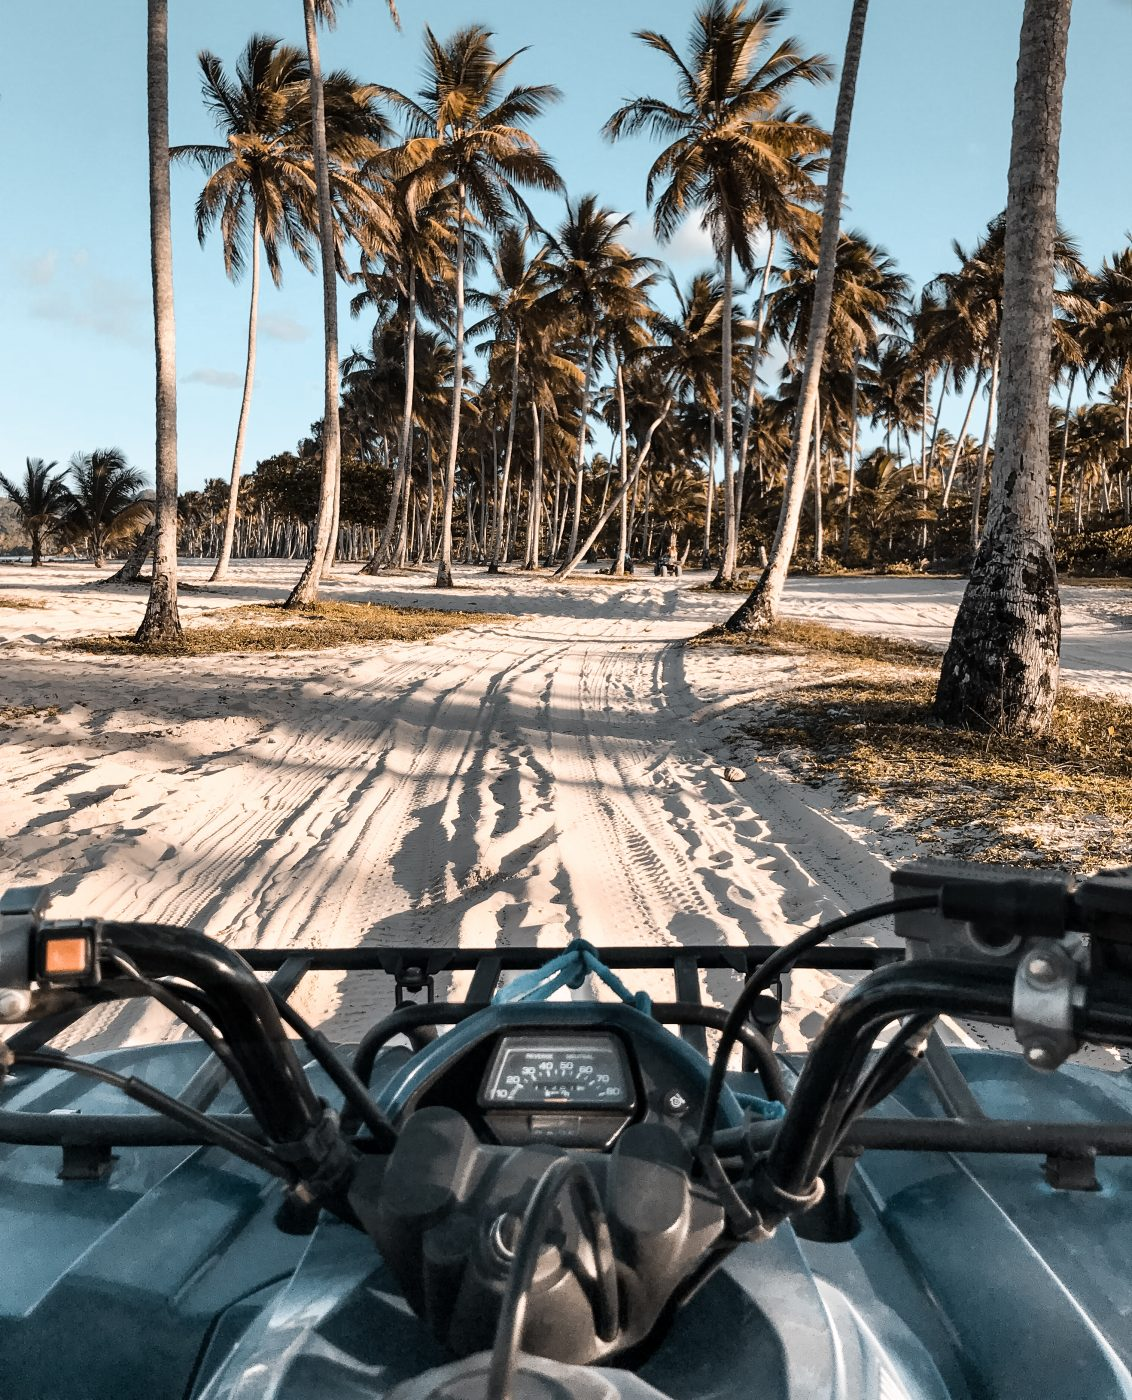 Riding an ATV in Las Galeras, the Dominican Republic